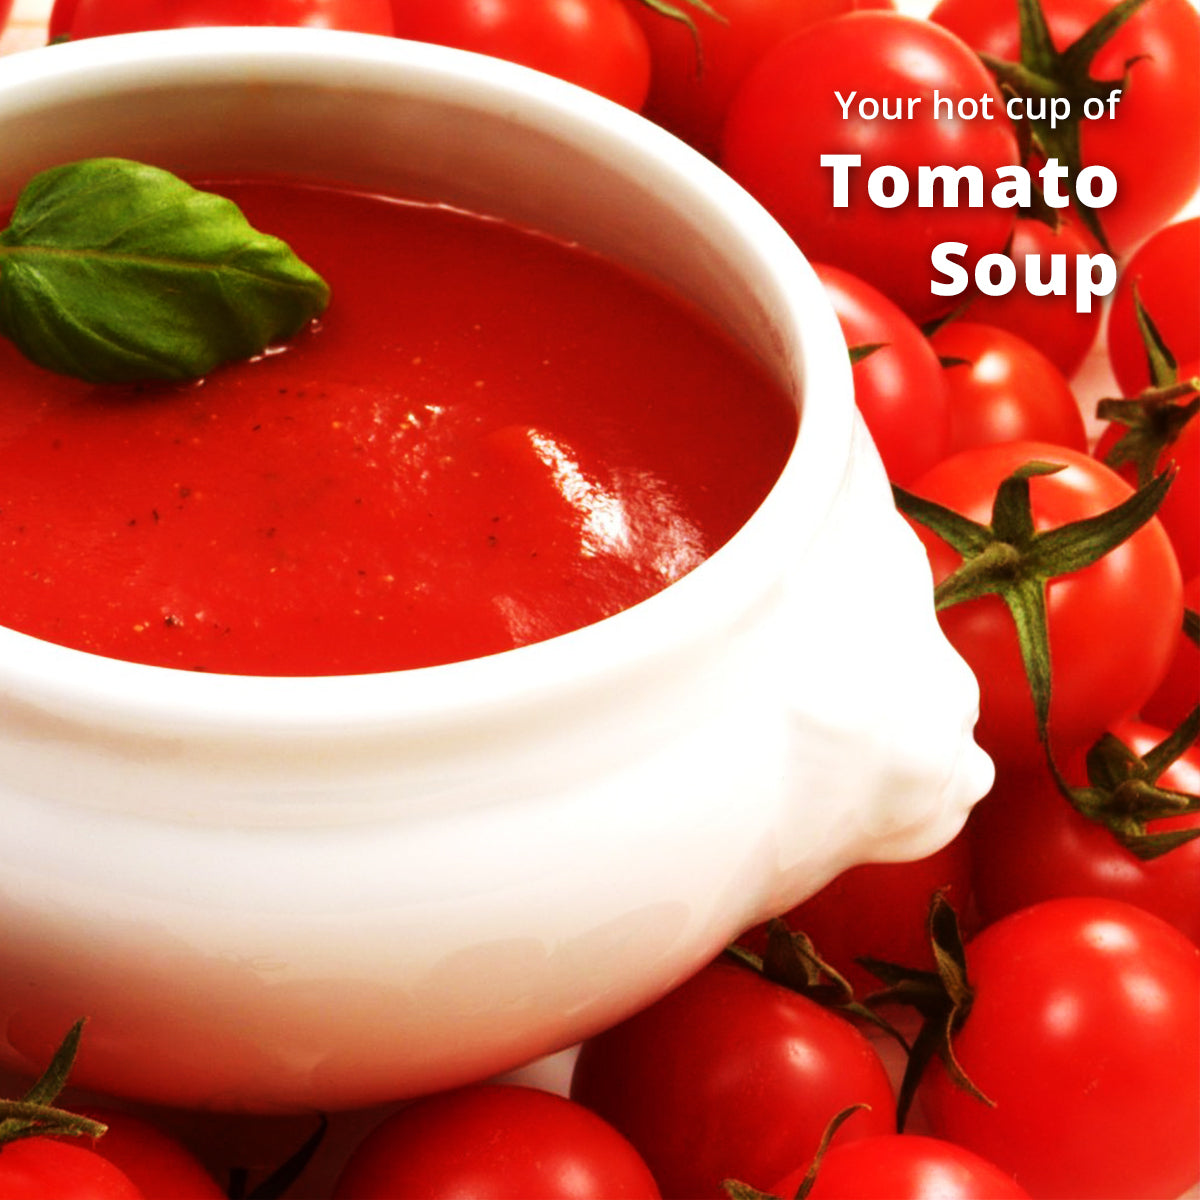 Tomato Soup Premix (500g) | Makes 40 Cups | Rich Taste as Home-Made | Mixture of Aromatic Herbs & Spices | For Manual Use - Just add Hot Water | Suitable for all Vending Machines